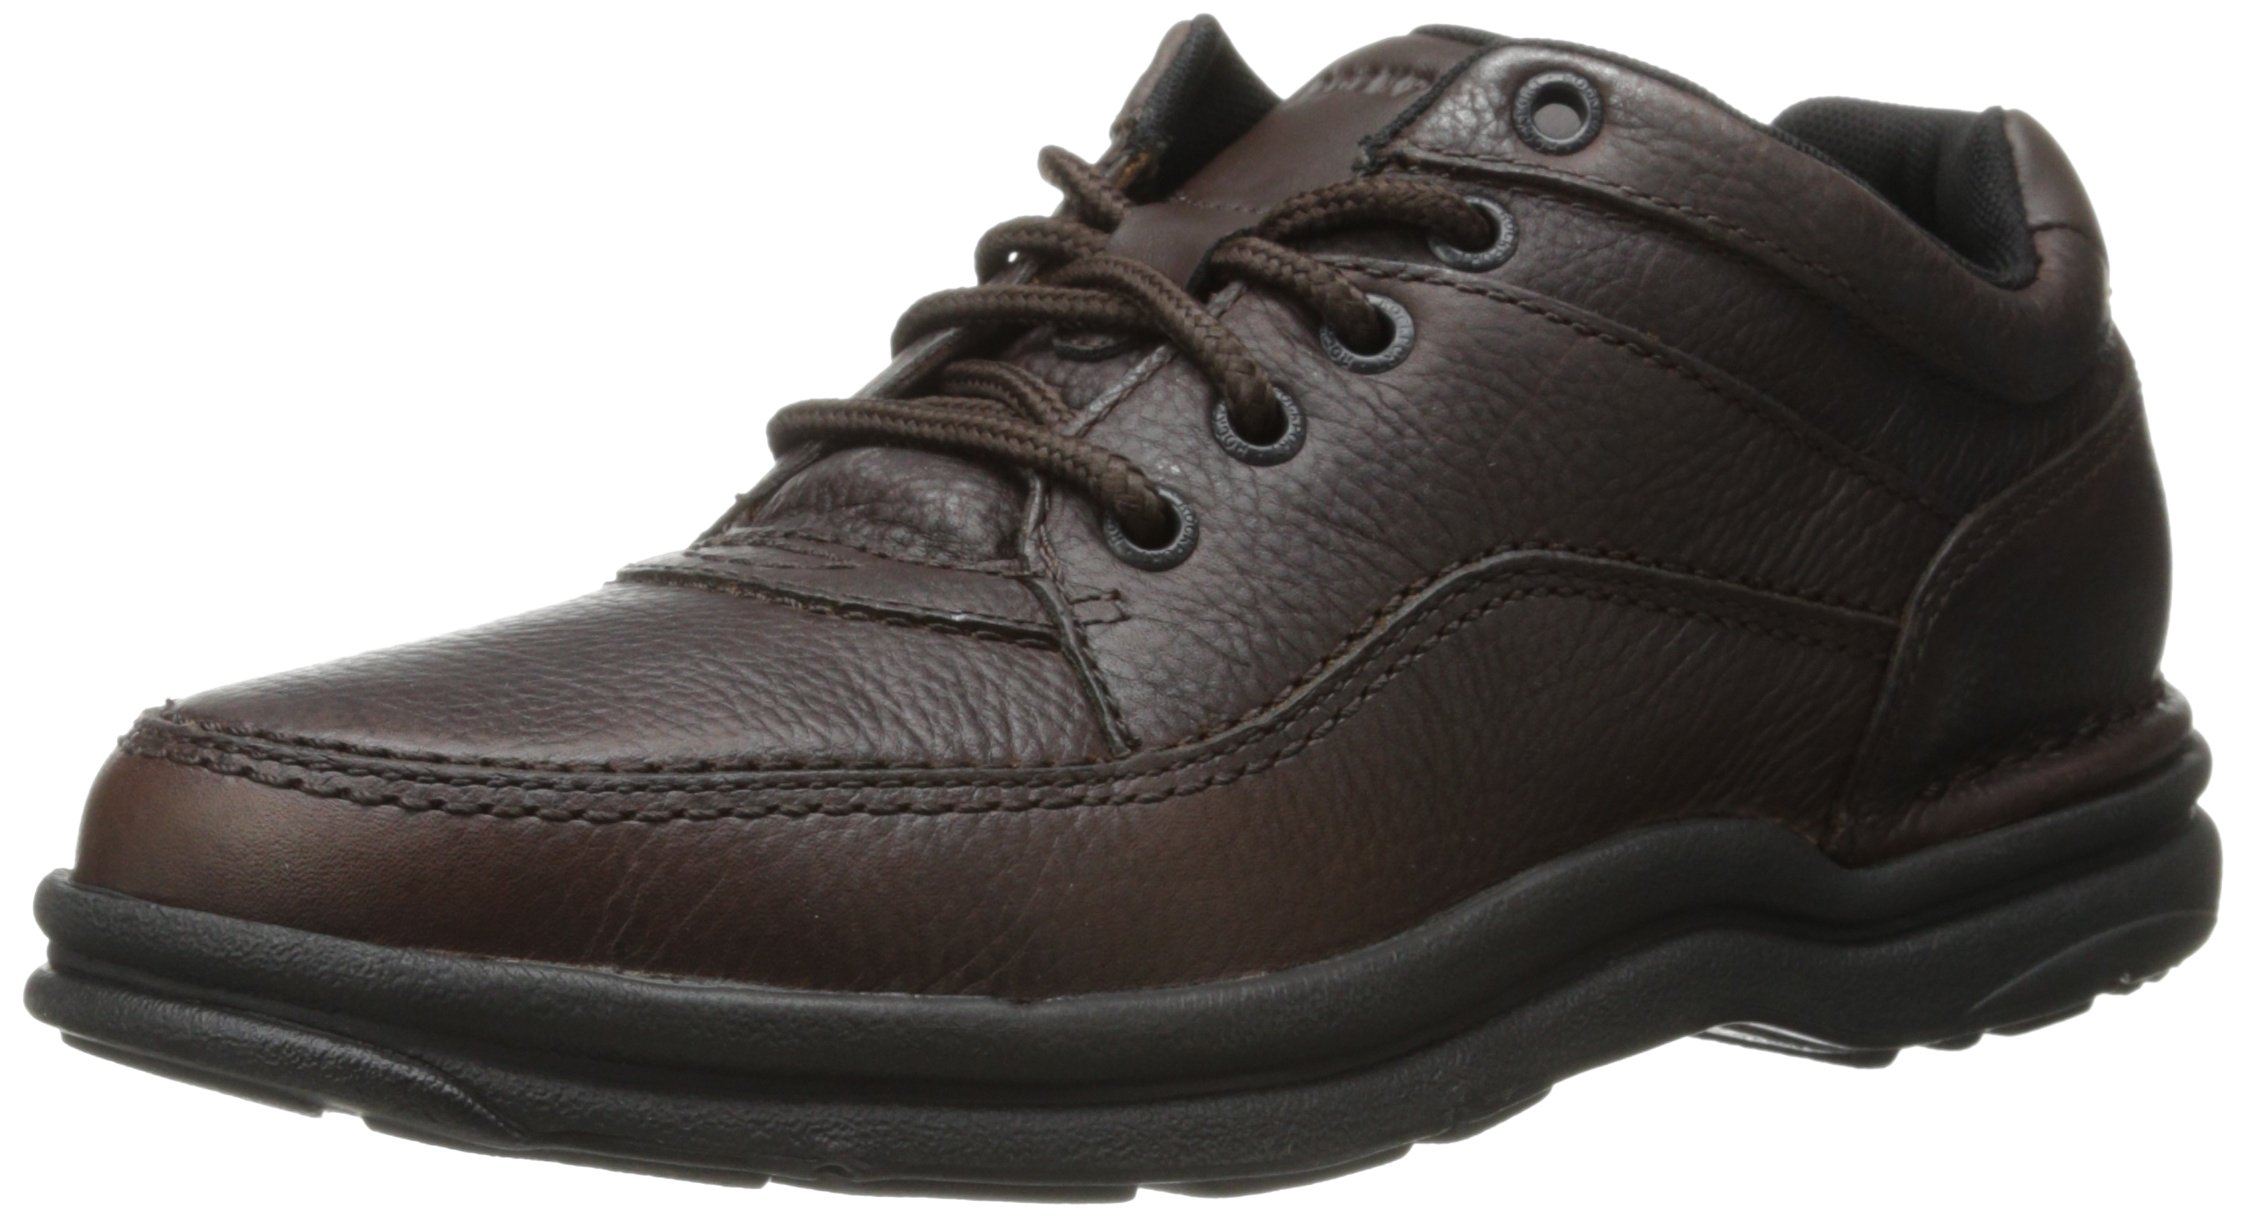 Rockport World Tour Classic Walking Shoe Review